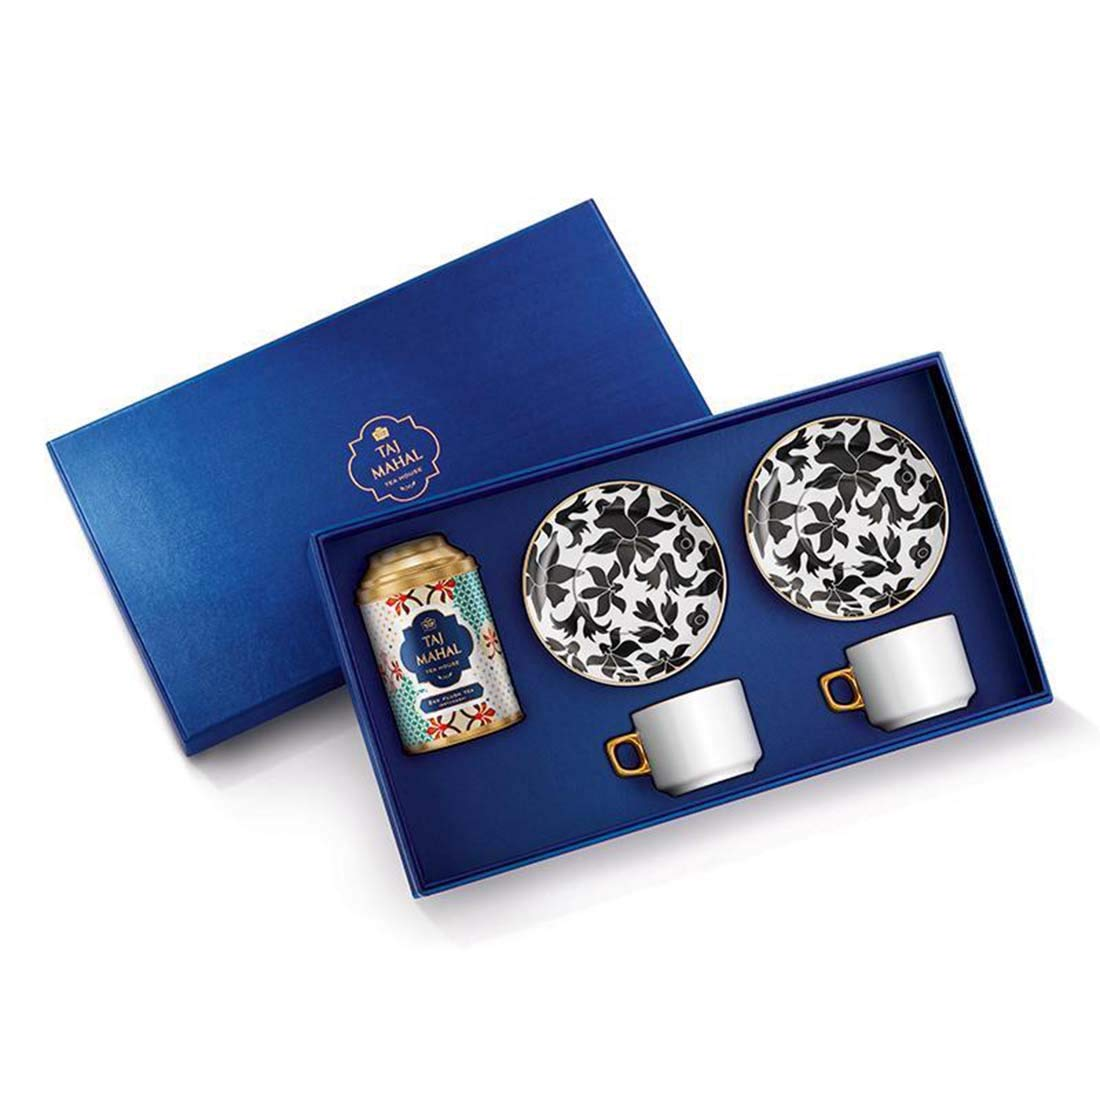 India Taj mahal Gold-tone Square Cufflinks with Select Gifts Pouch